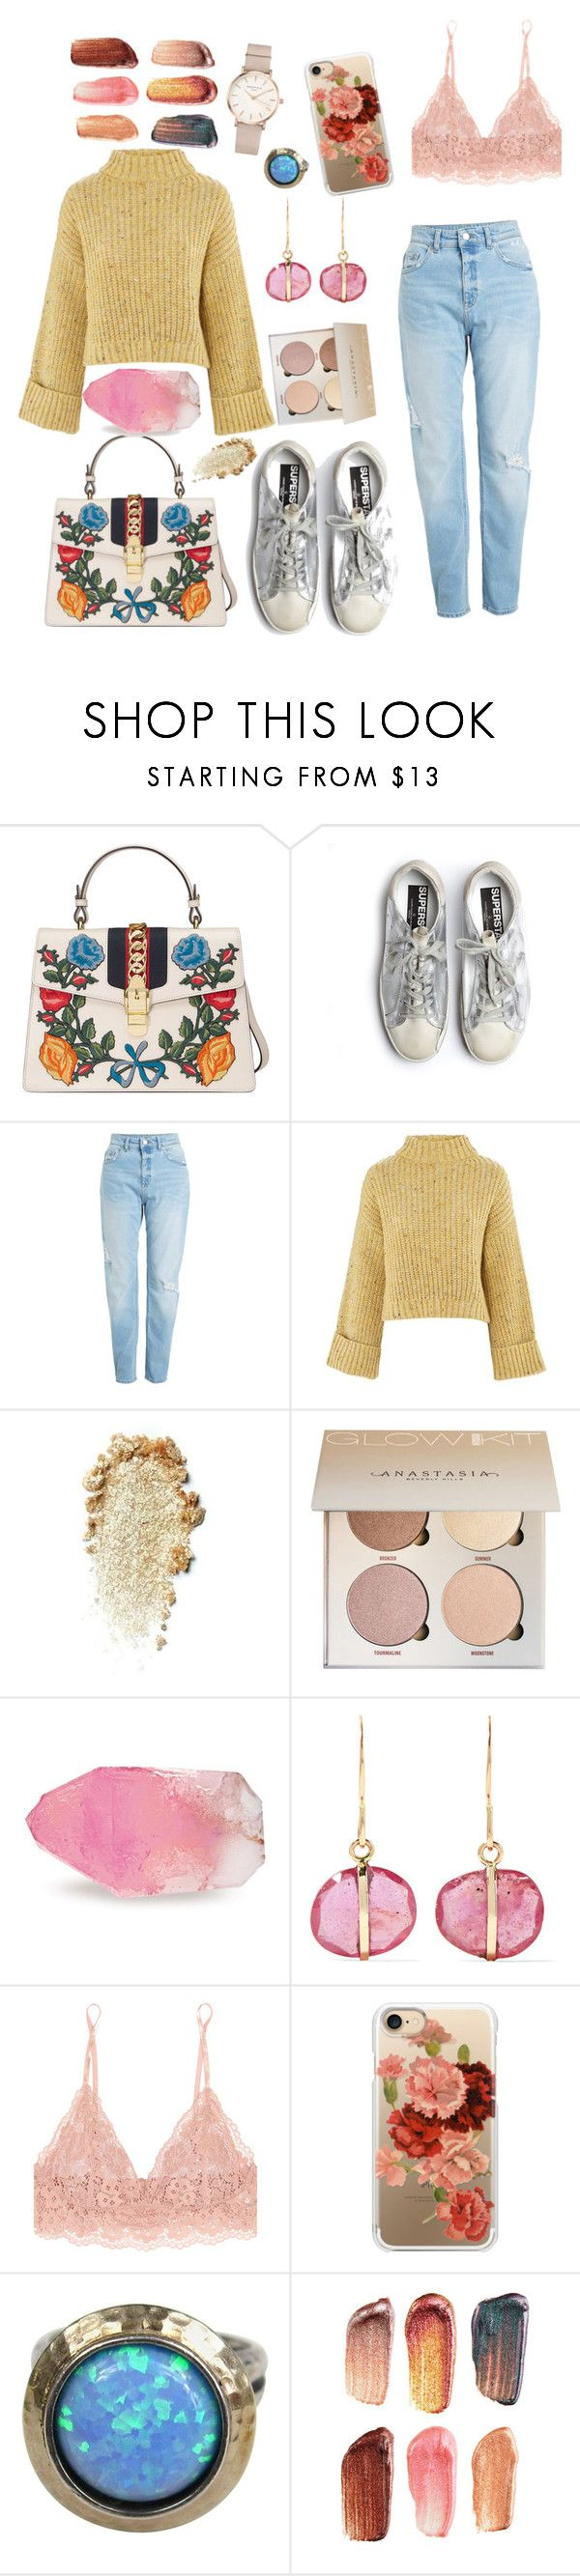 """""""colours"""" by burfurla ❤ liked on Polyvore featuring Gucci, Golden Goose, Topshop, SoapRocks, Melissa Joy Manning, Hanky Panky, Casetify, Bite, ROSEFIELD and look"""